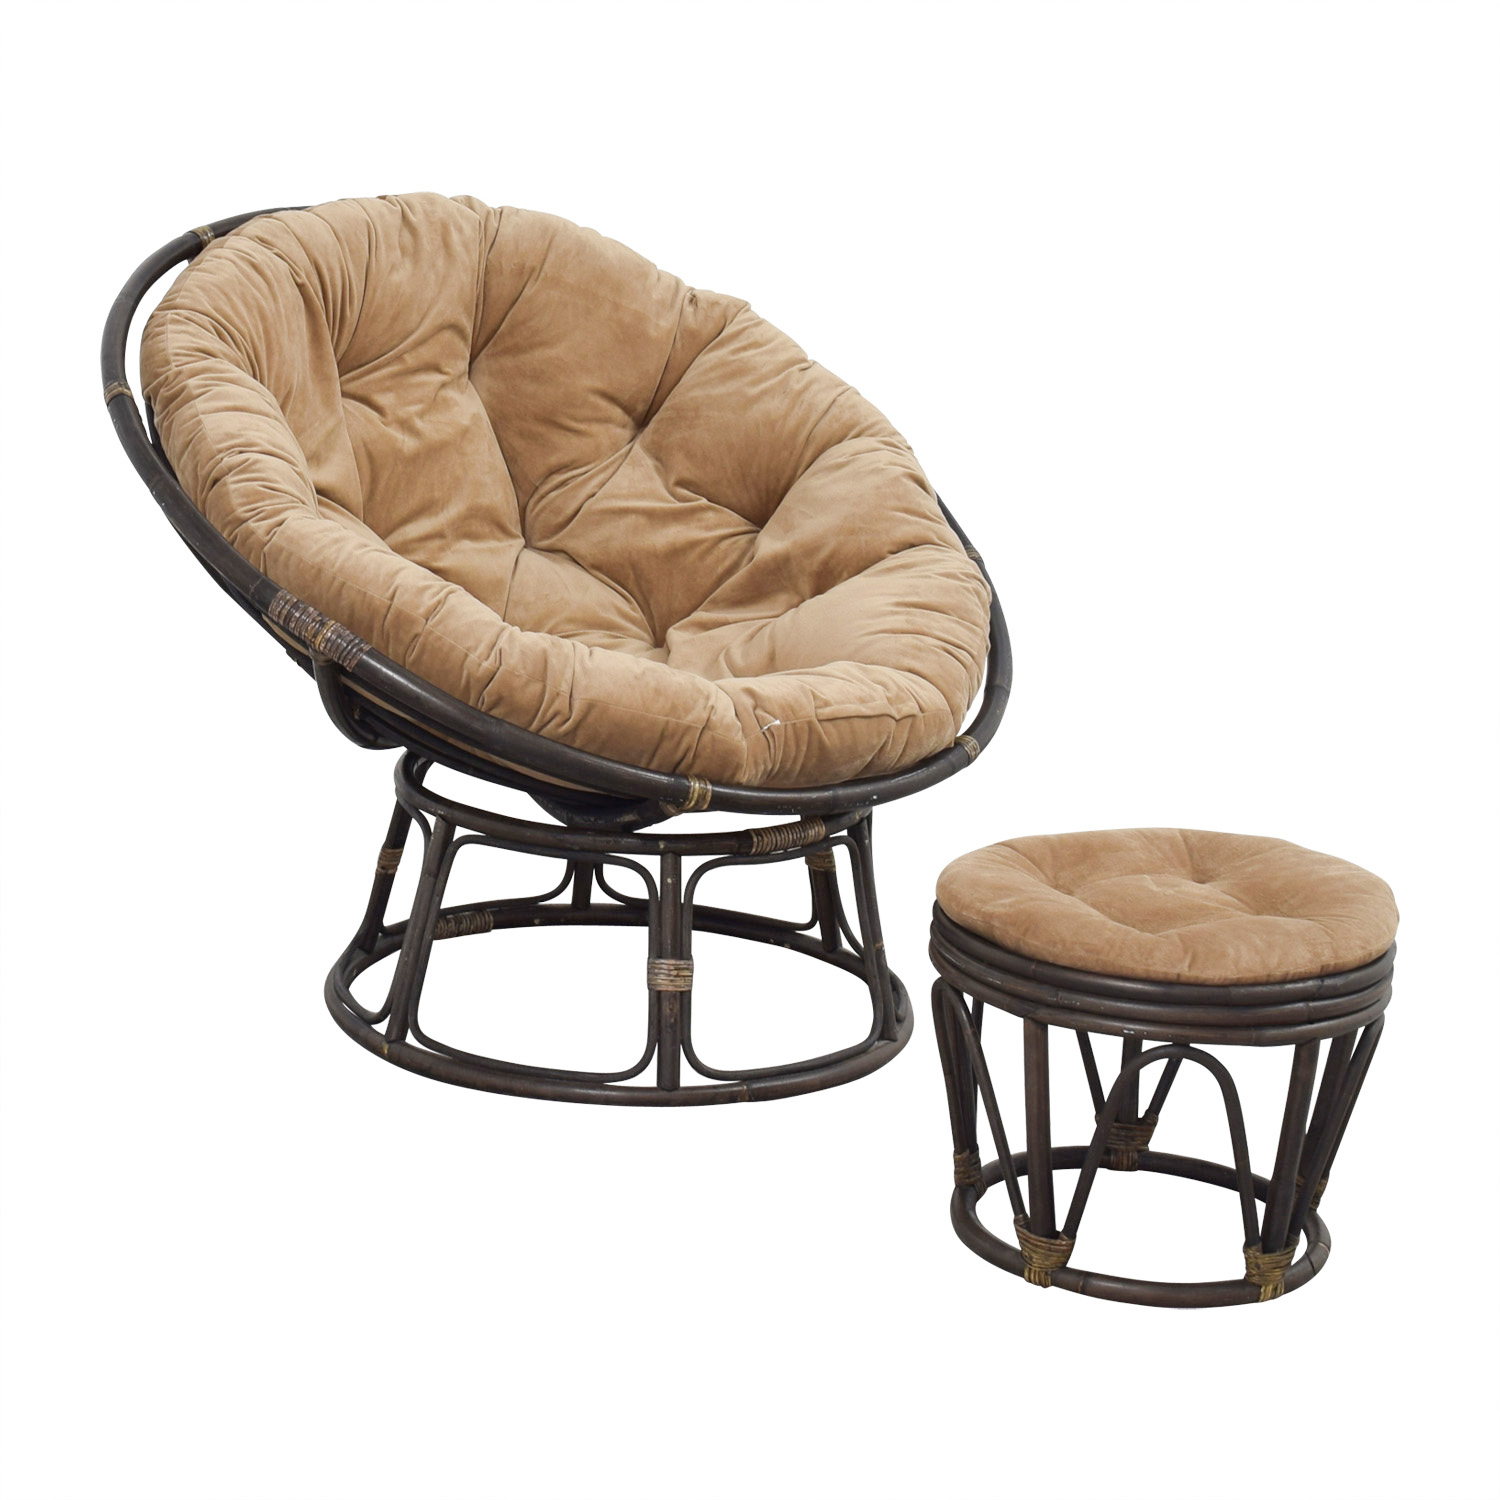 awesome Ottoman Imports Part - 8: ... Pier 1 Imports Pier 1 Imports Papasan Brown Lounge Chair and Ottoman nj  ...